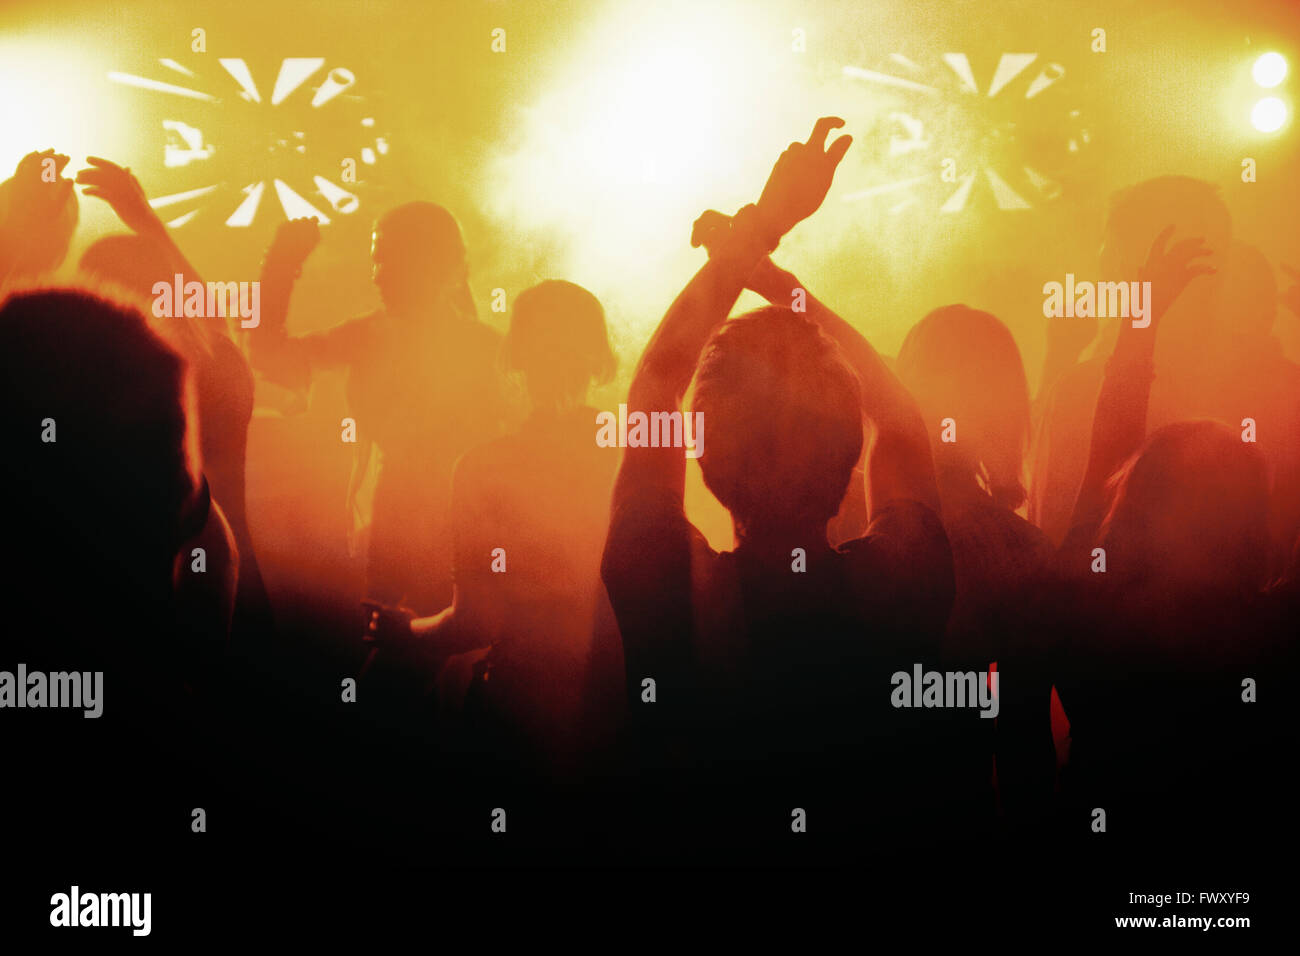 Finland, Silhouettes of people dancing at concert Stock Photo